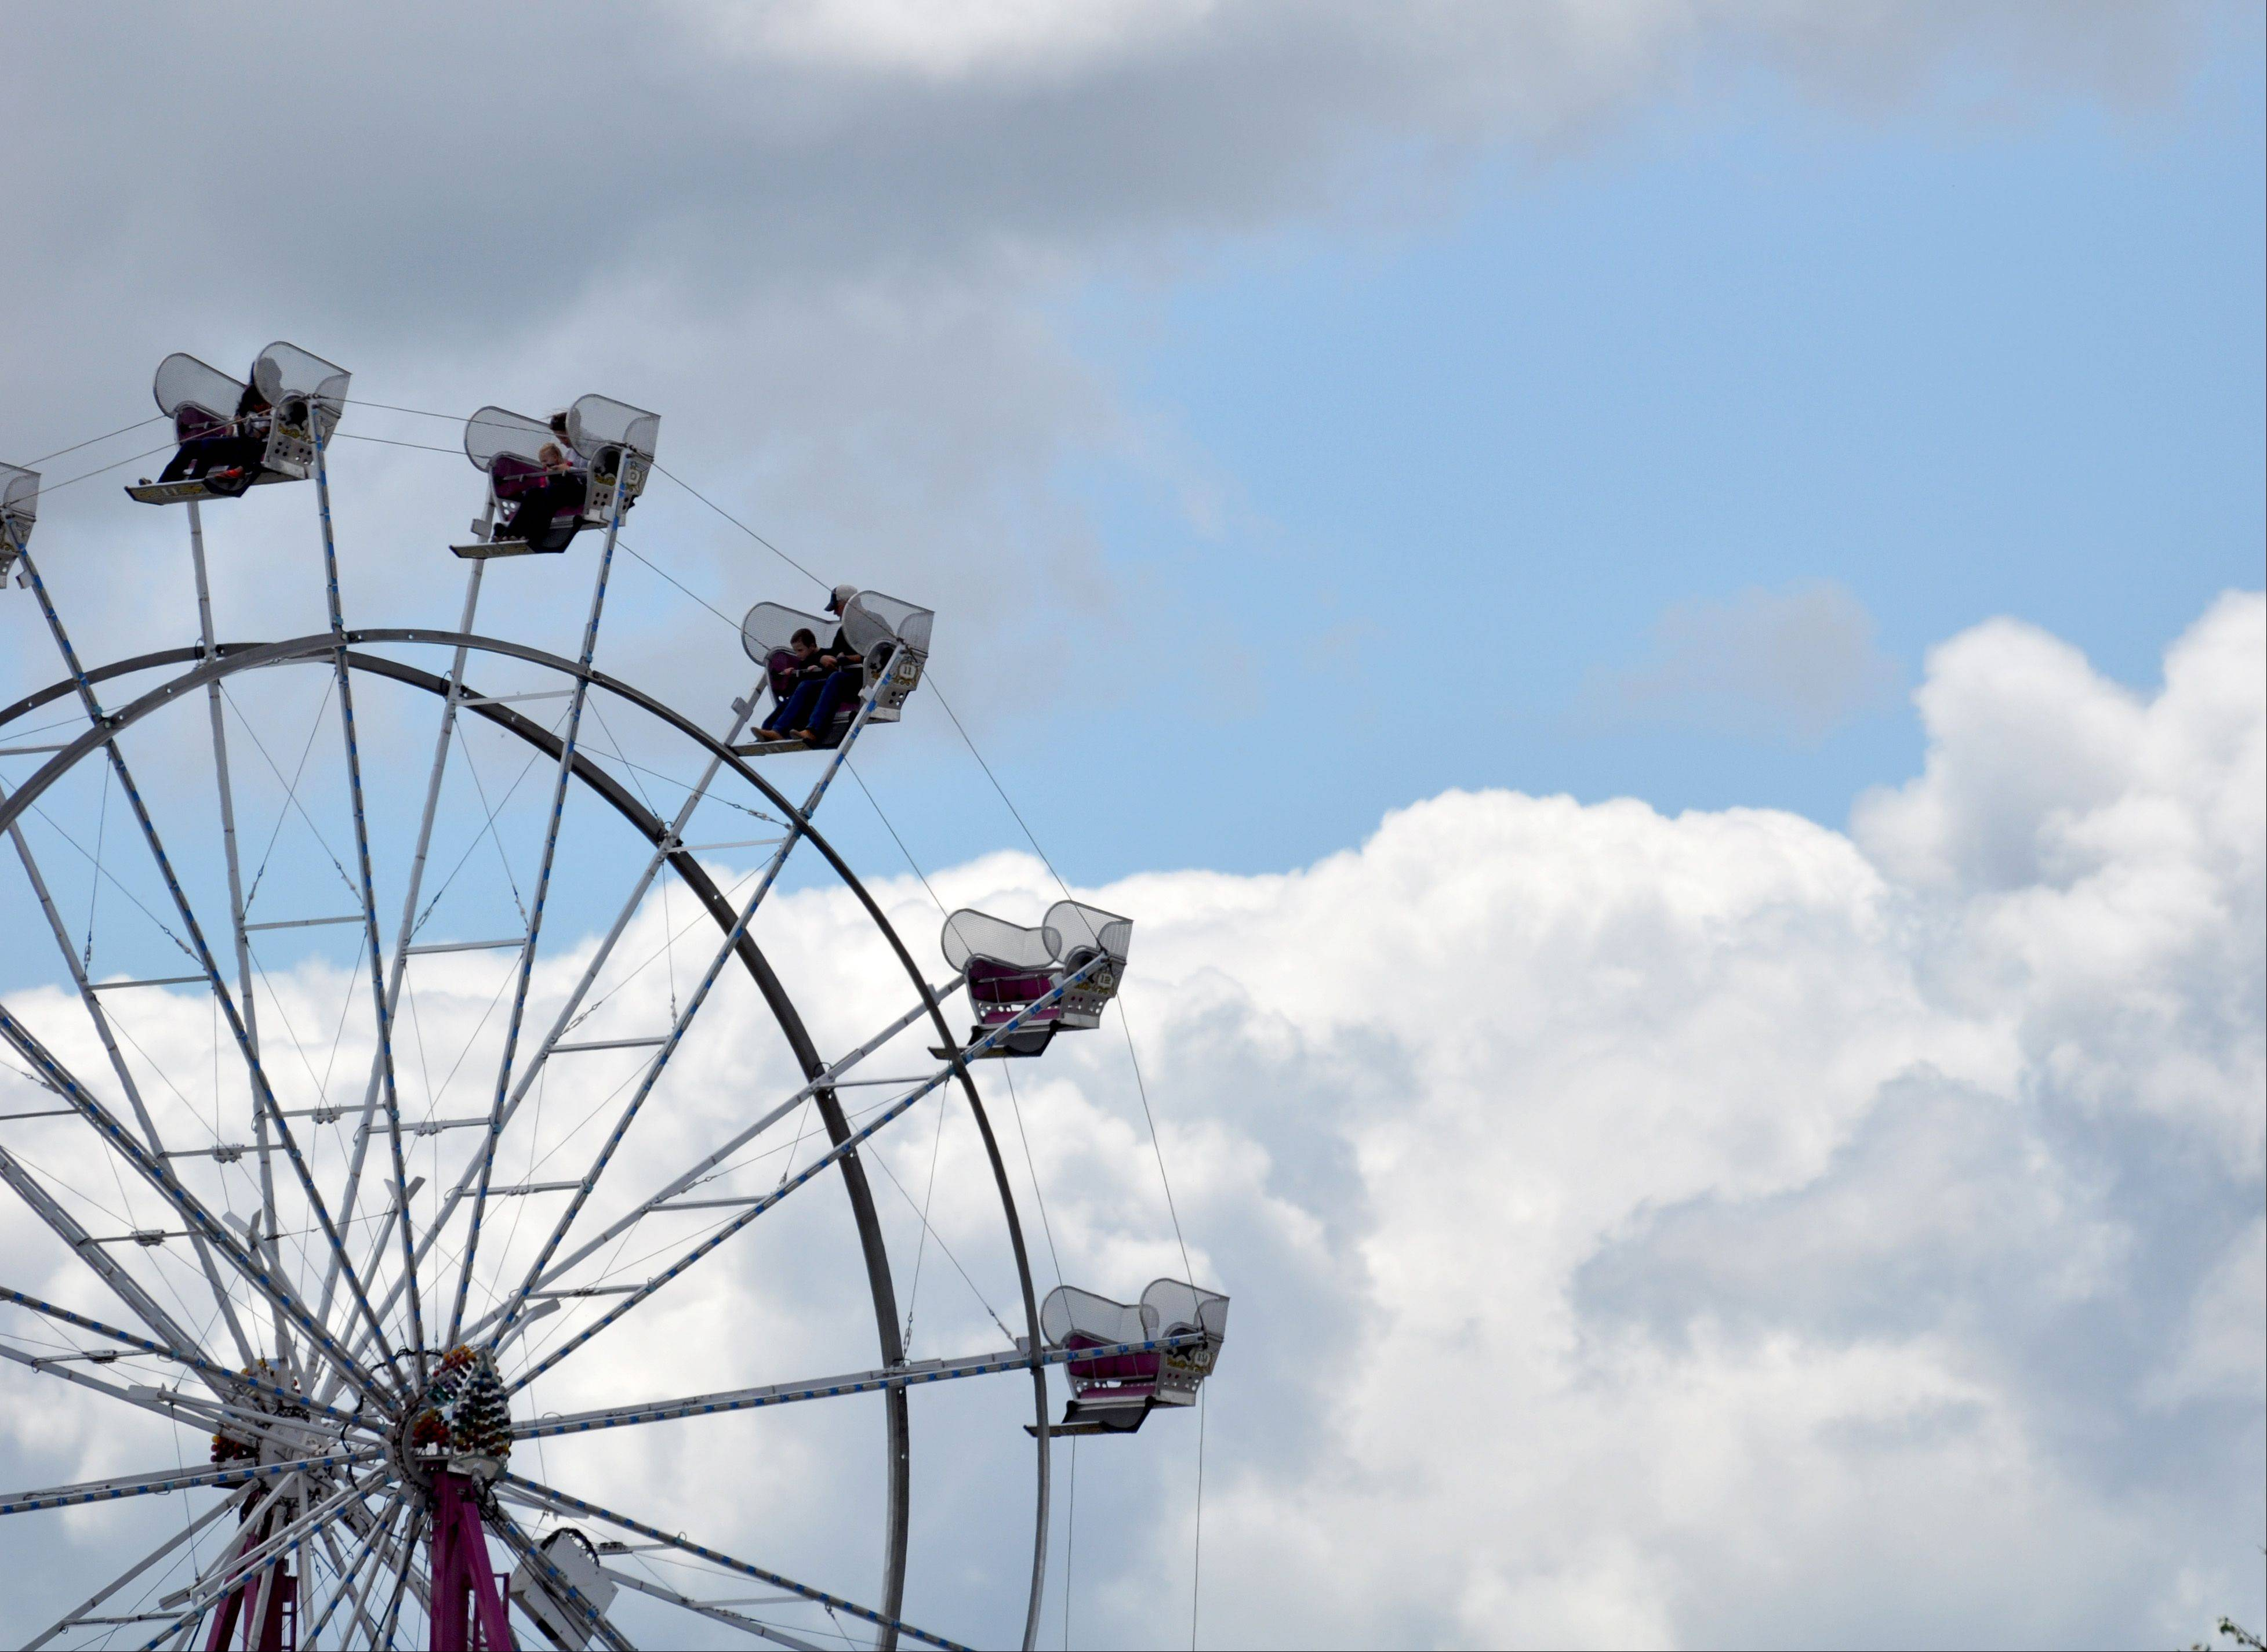 The clouds broke and the sun began to shine during the final day of the Lake County Fair Sunday, July 28.